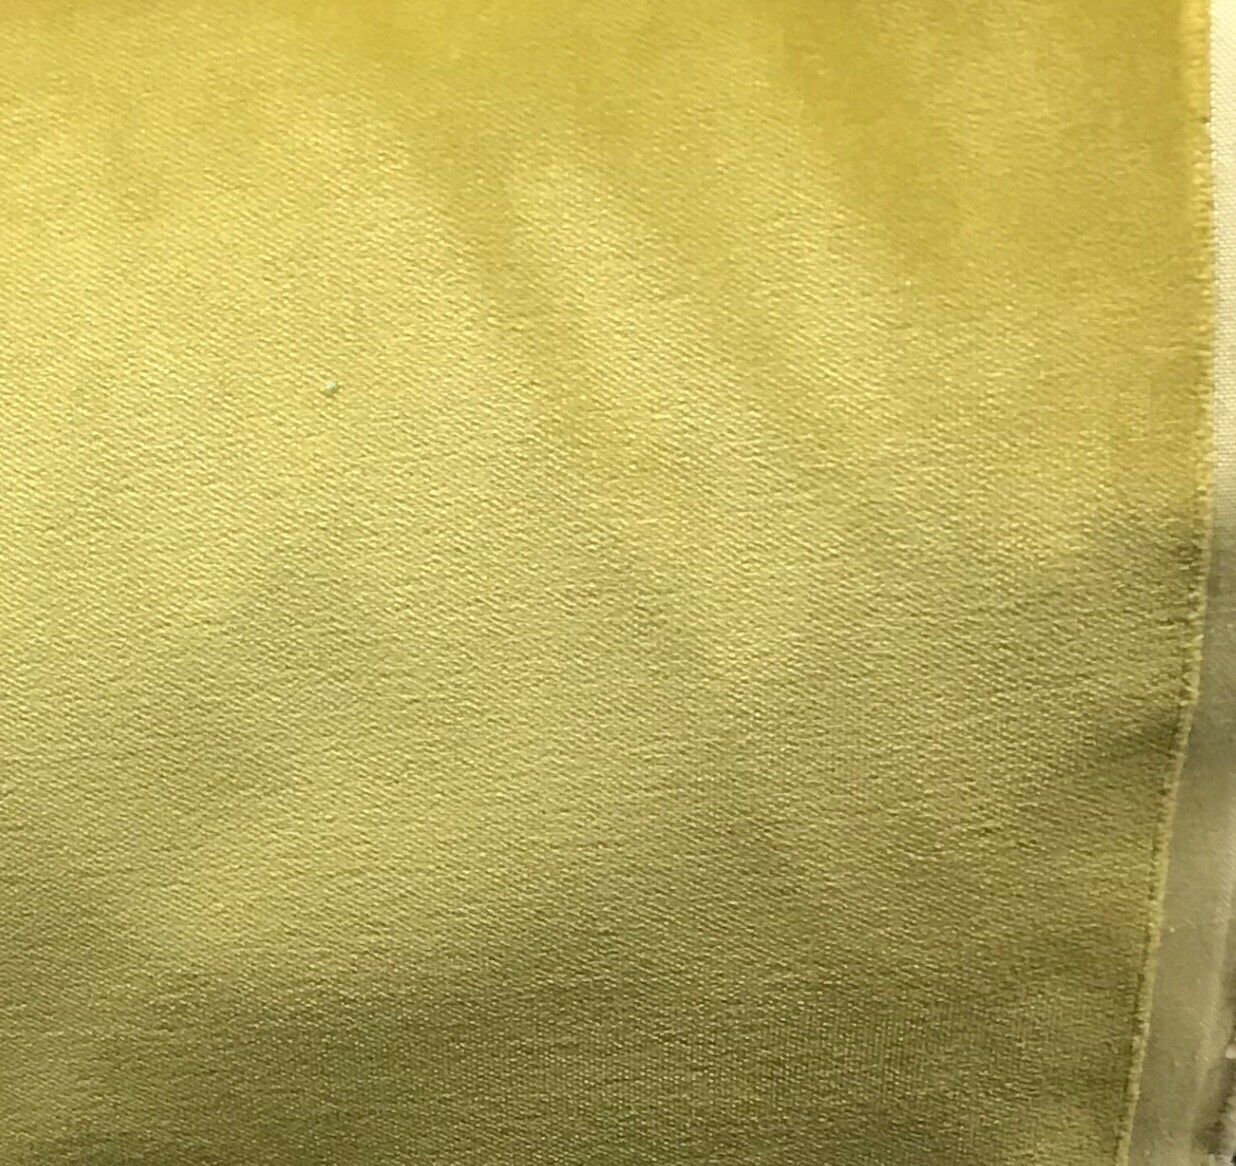 "SWATCH 4"" x 7"" Sample -Heavy Weight Velvet Upholstery Fabric - Soft- Yellow"